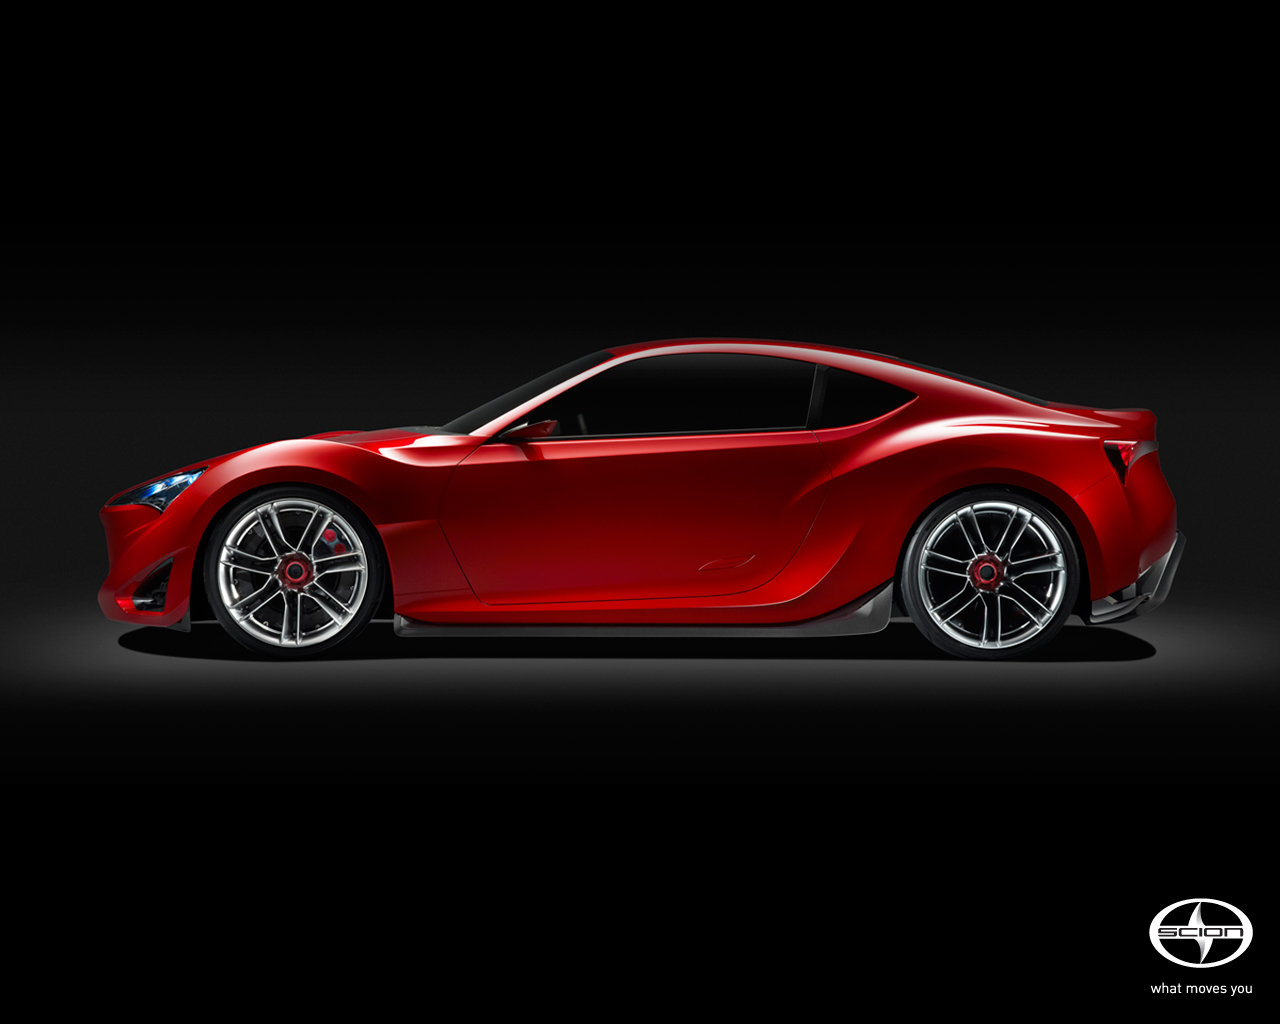 2013 Scion FR-S Wallpapers - Car Wallpapers